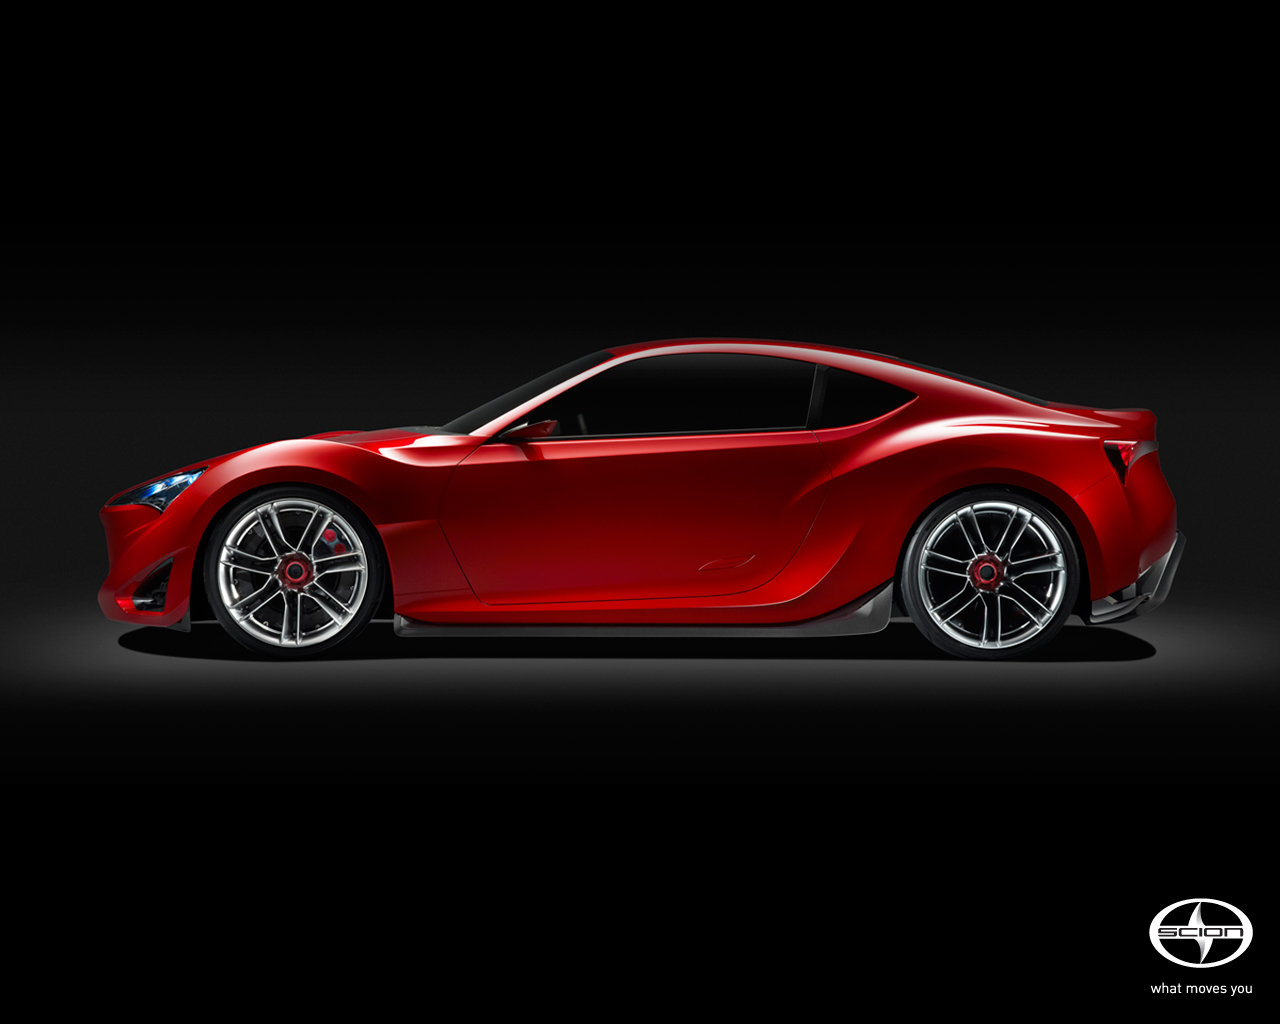 2013 Scion FR-S Wallpapers - Car Wallpapers